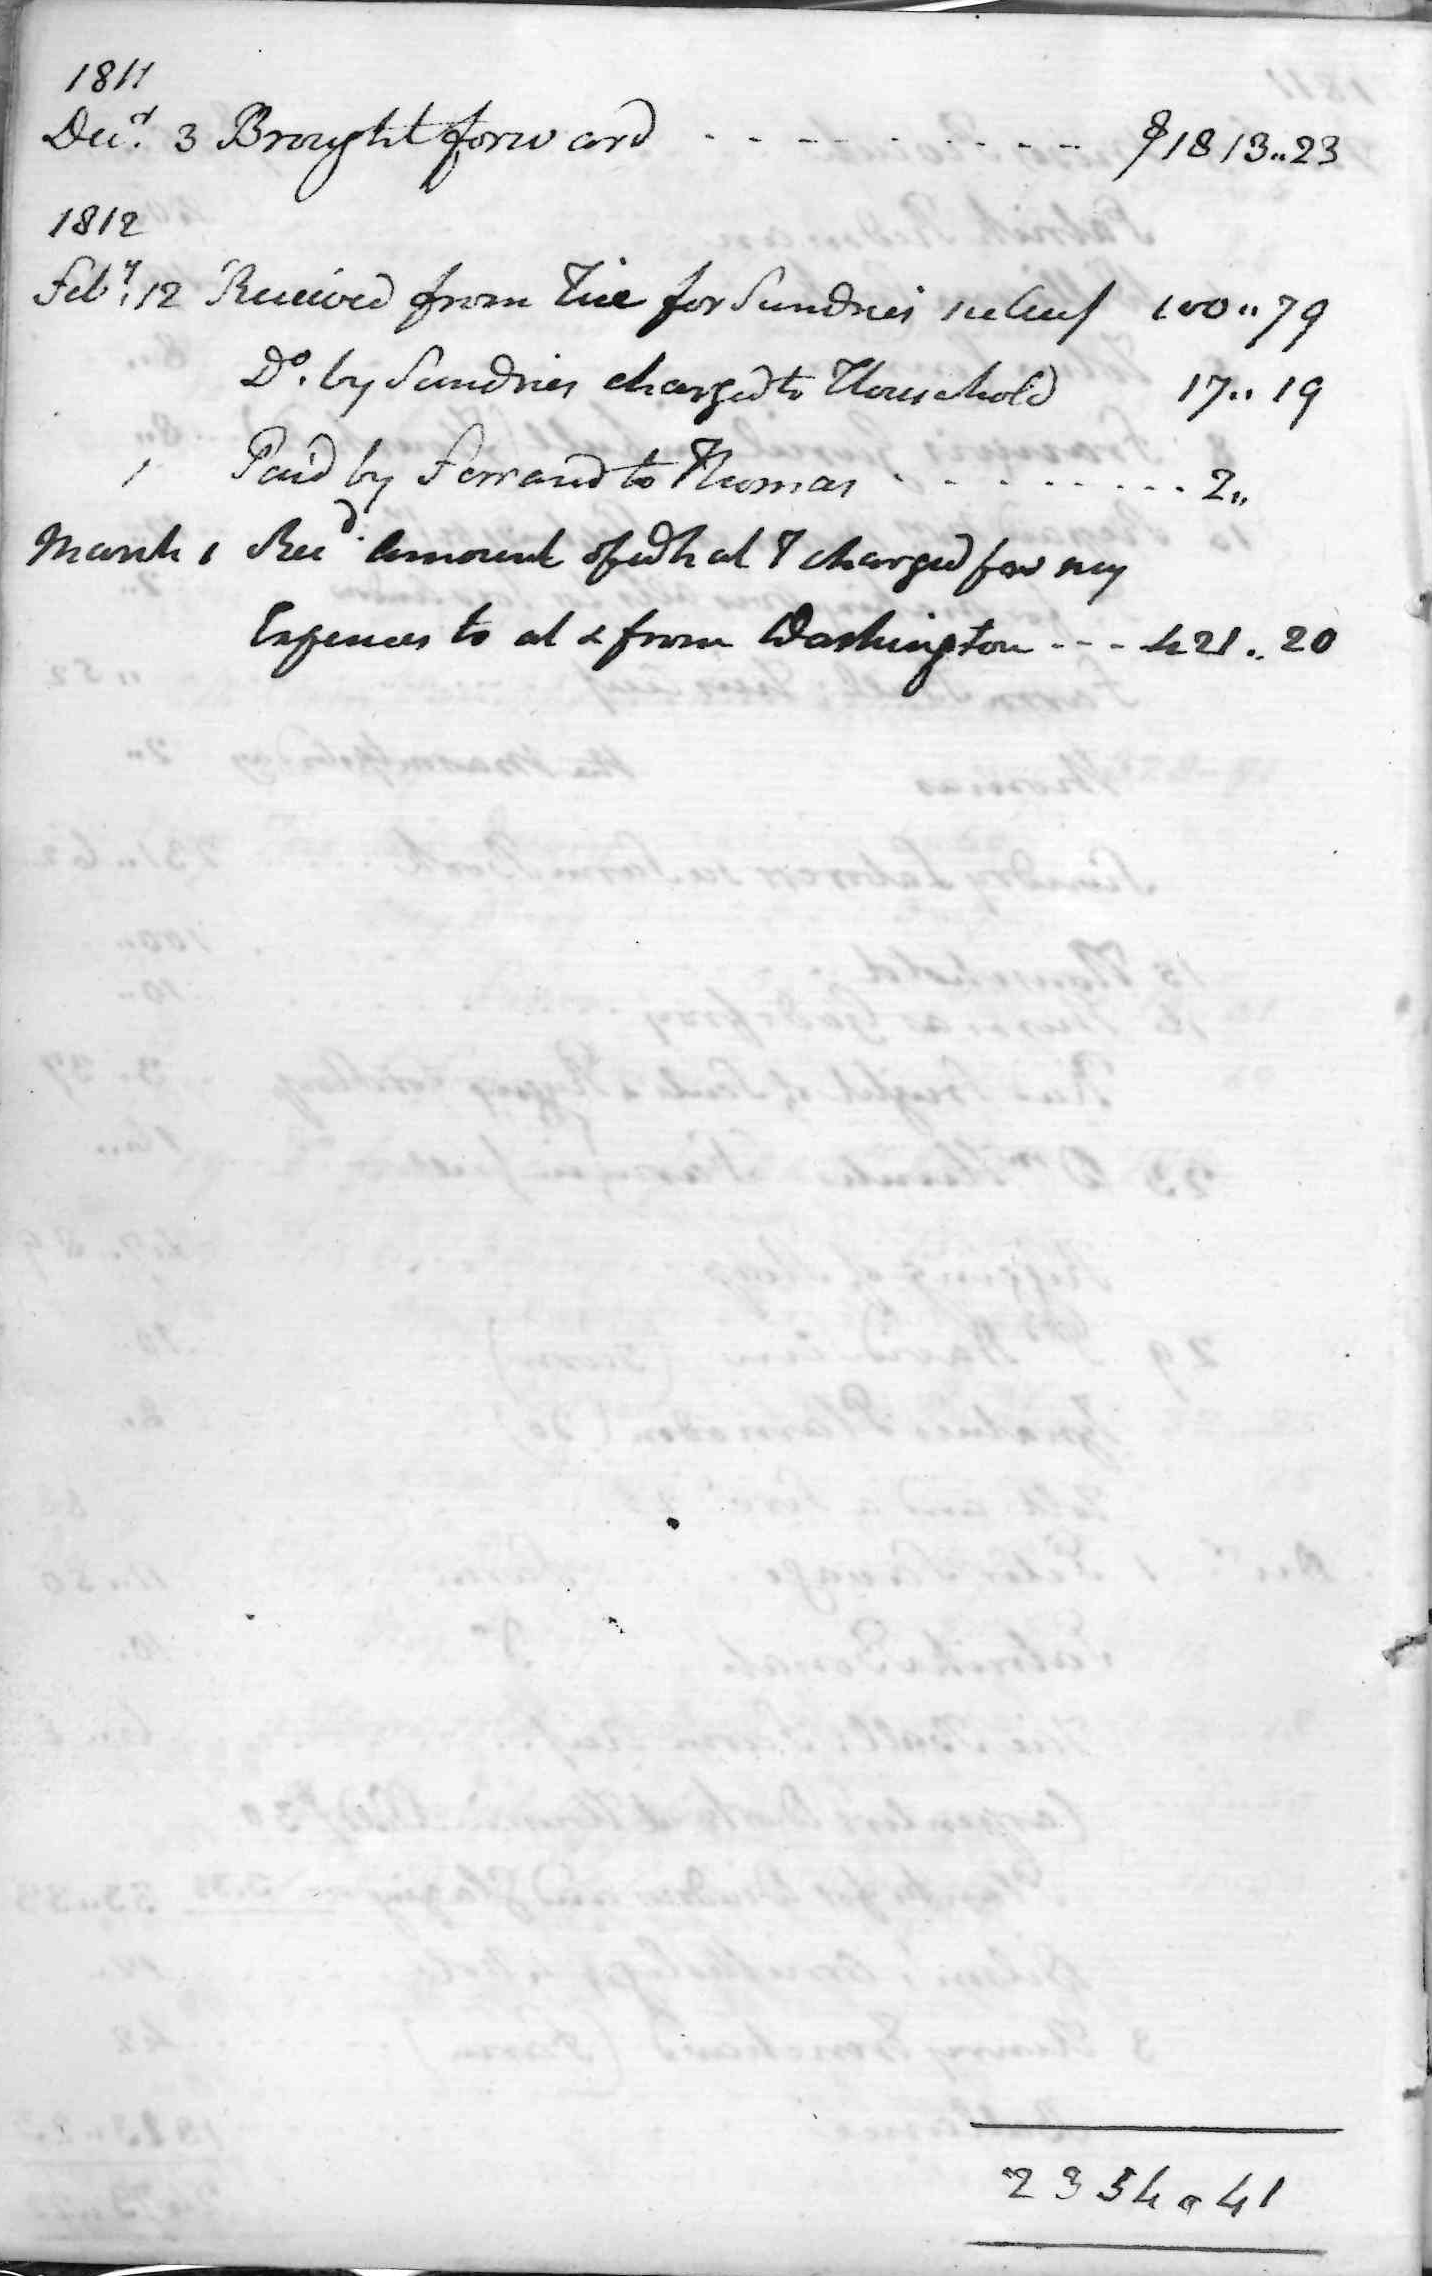 Gouverneur Morris Cash Book, folio 4, left side